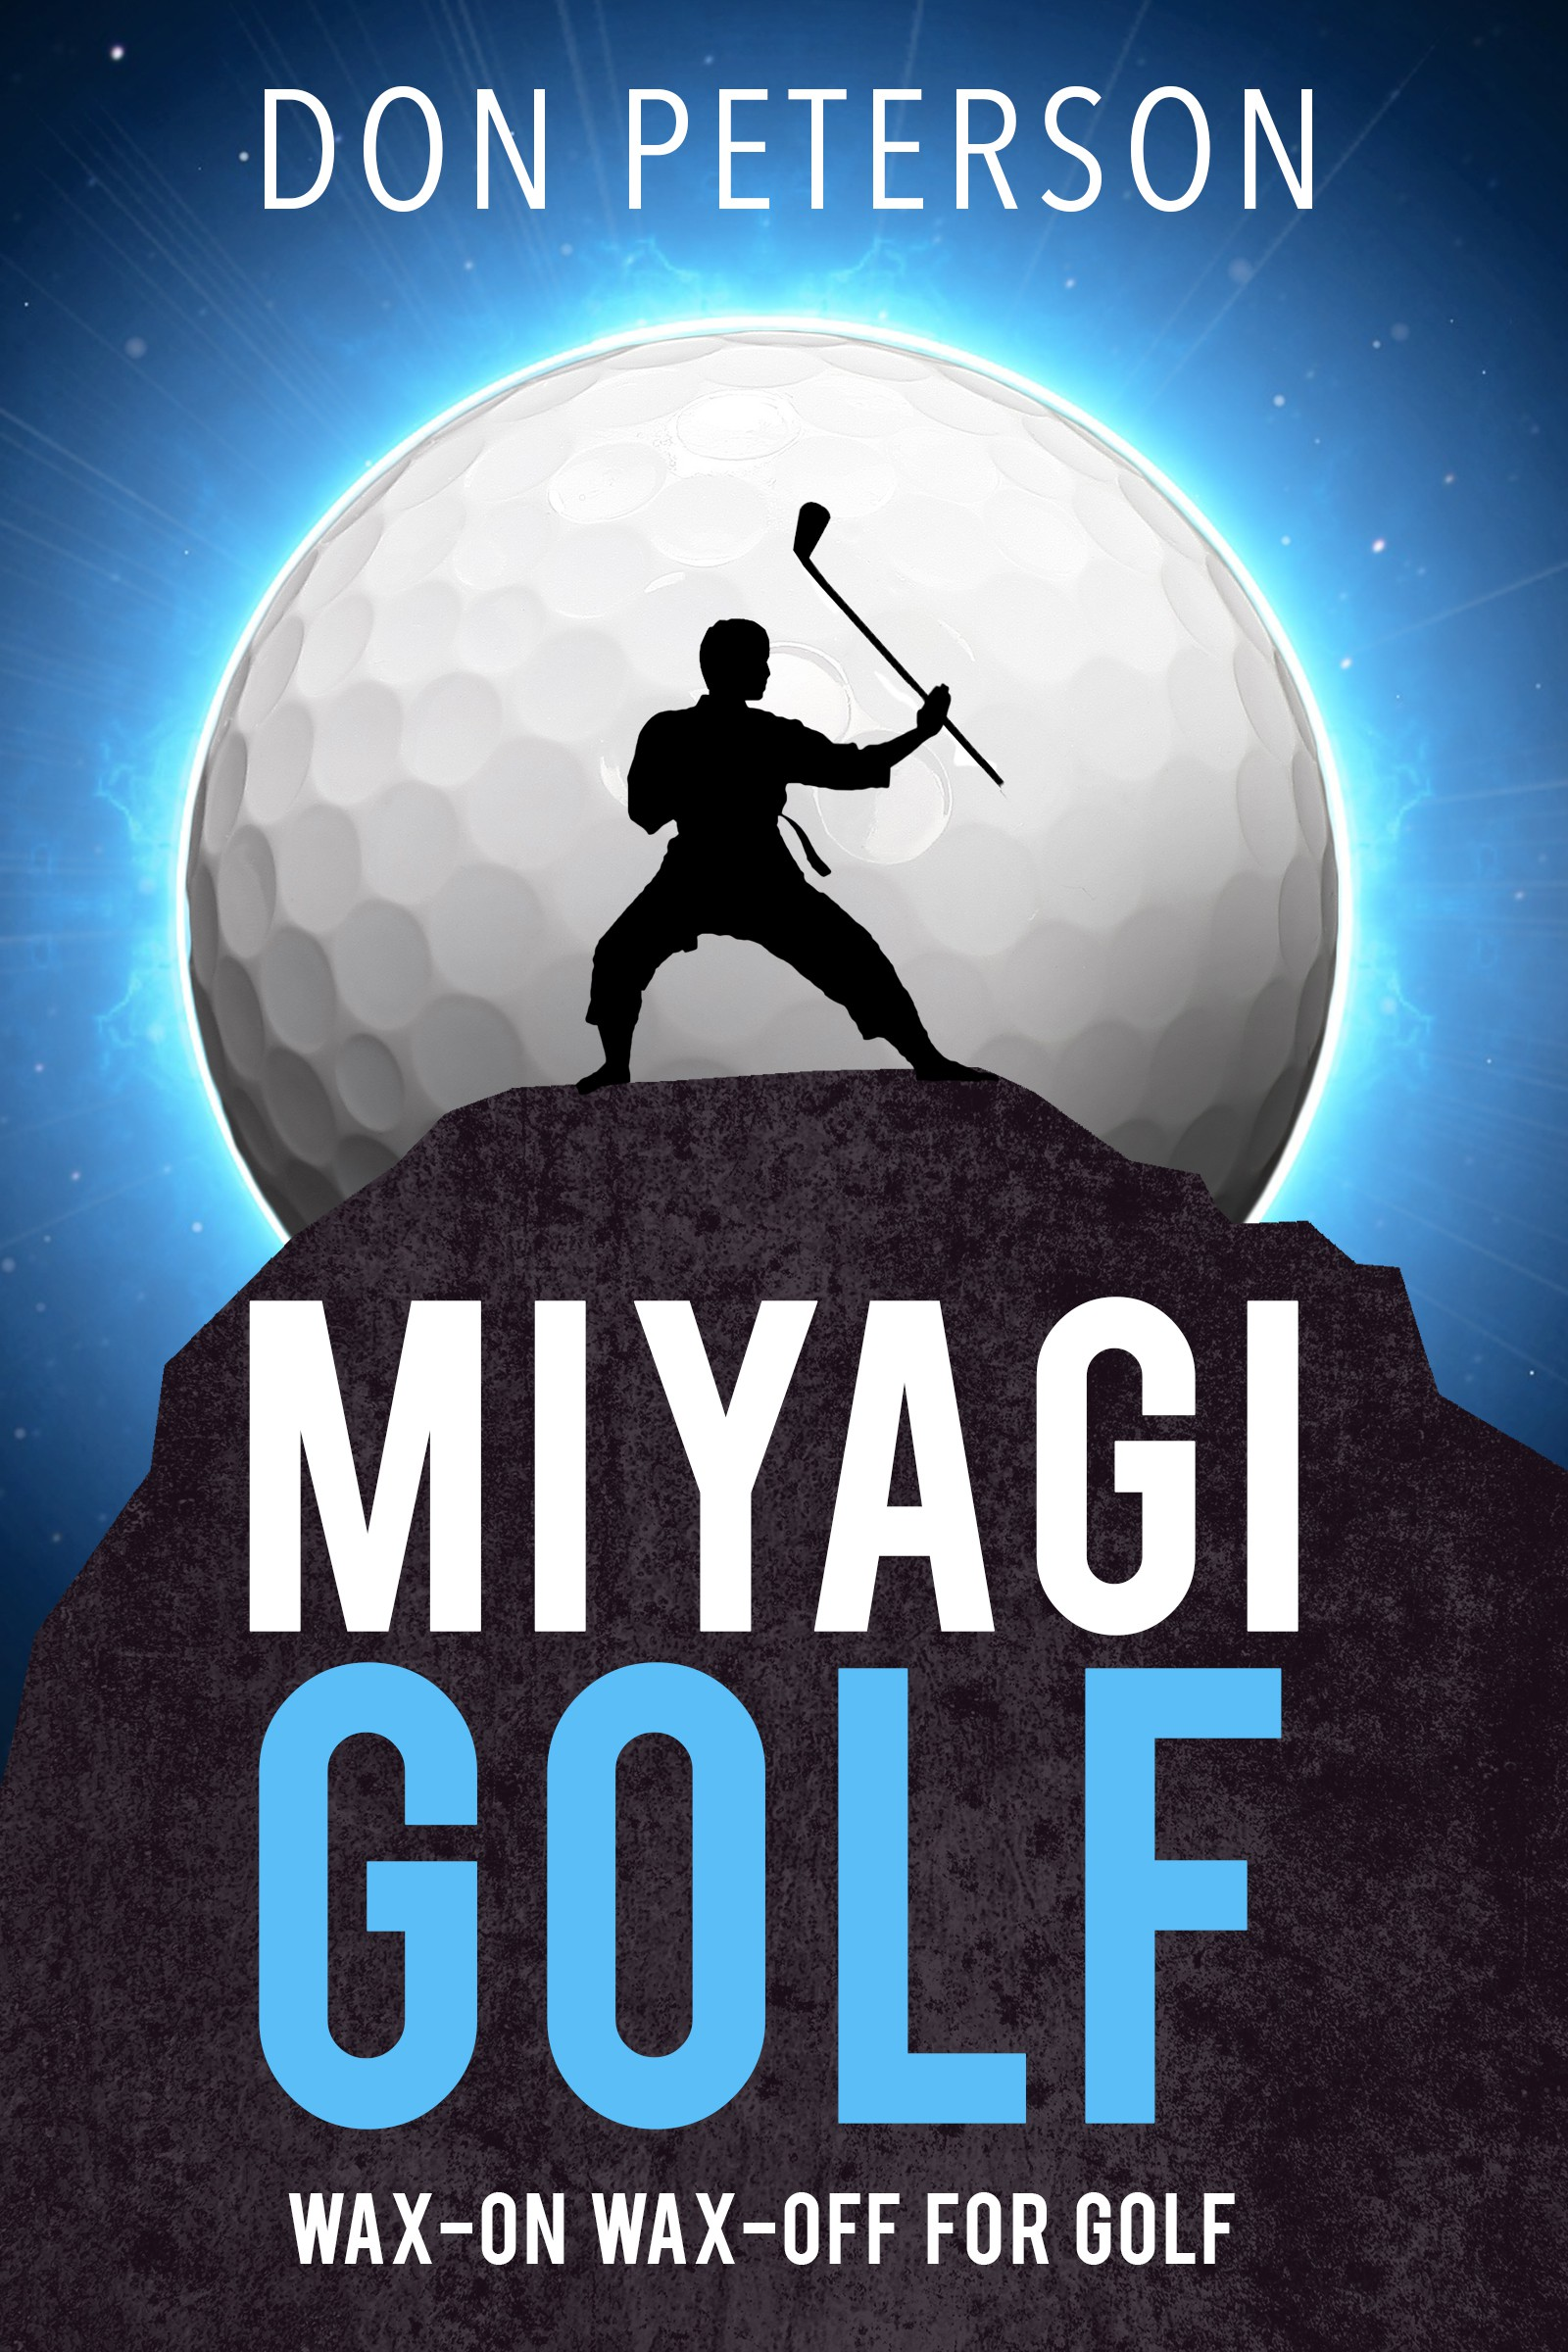 Highly Visible Golf Instruction Book Cover Design